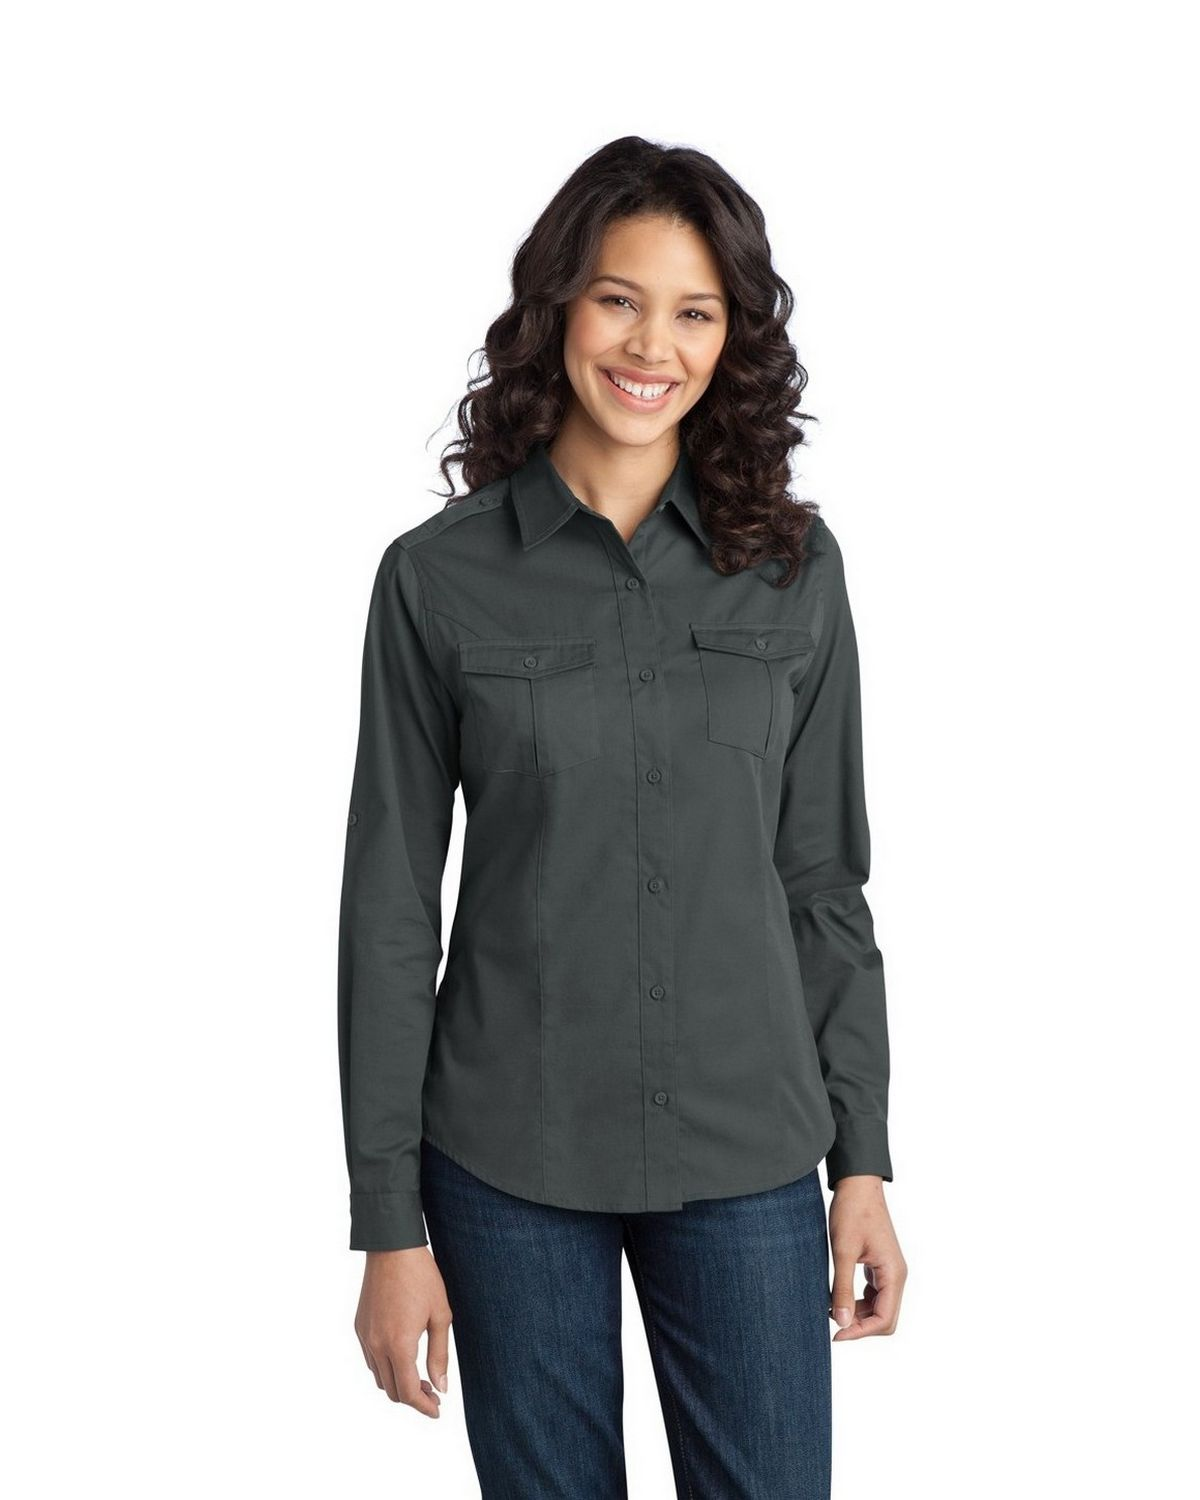 Port Authority L649 Women's Stain-Resistant Roll Sleeve Twill Shirt - Steel Grey - XS from Port Authority